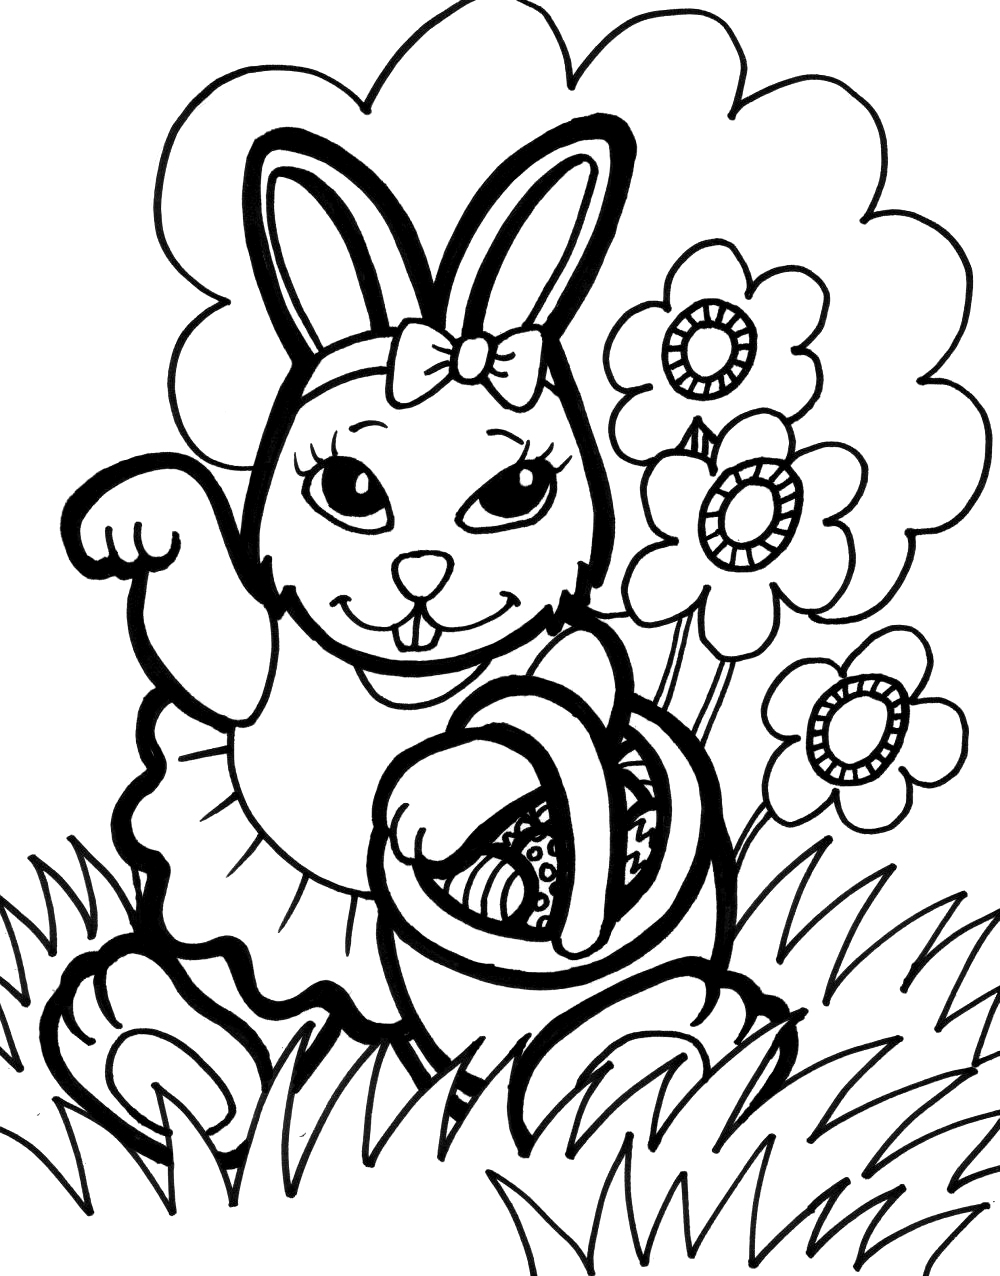 coloring free hard coloring pages for adults best coloring pages for kids free coloring